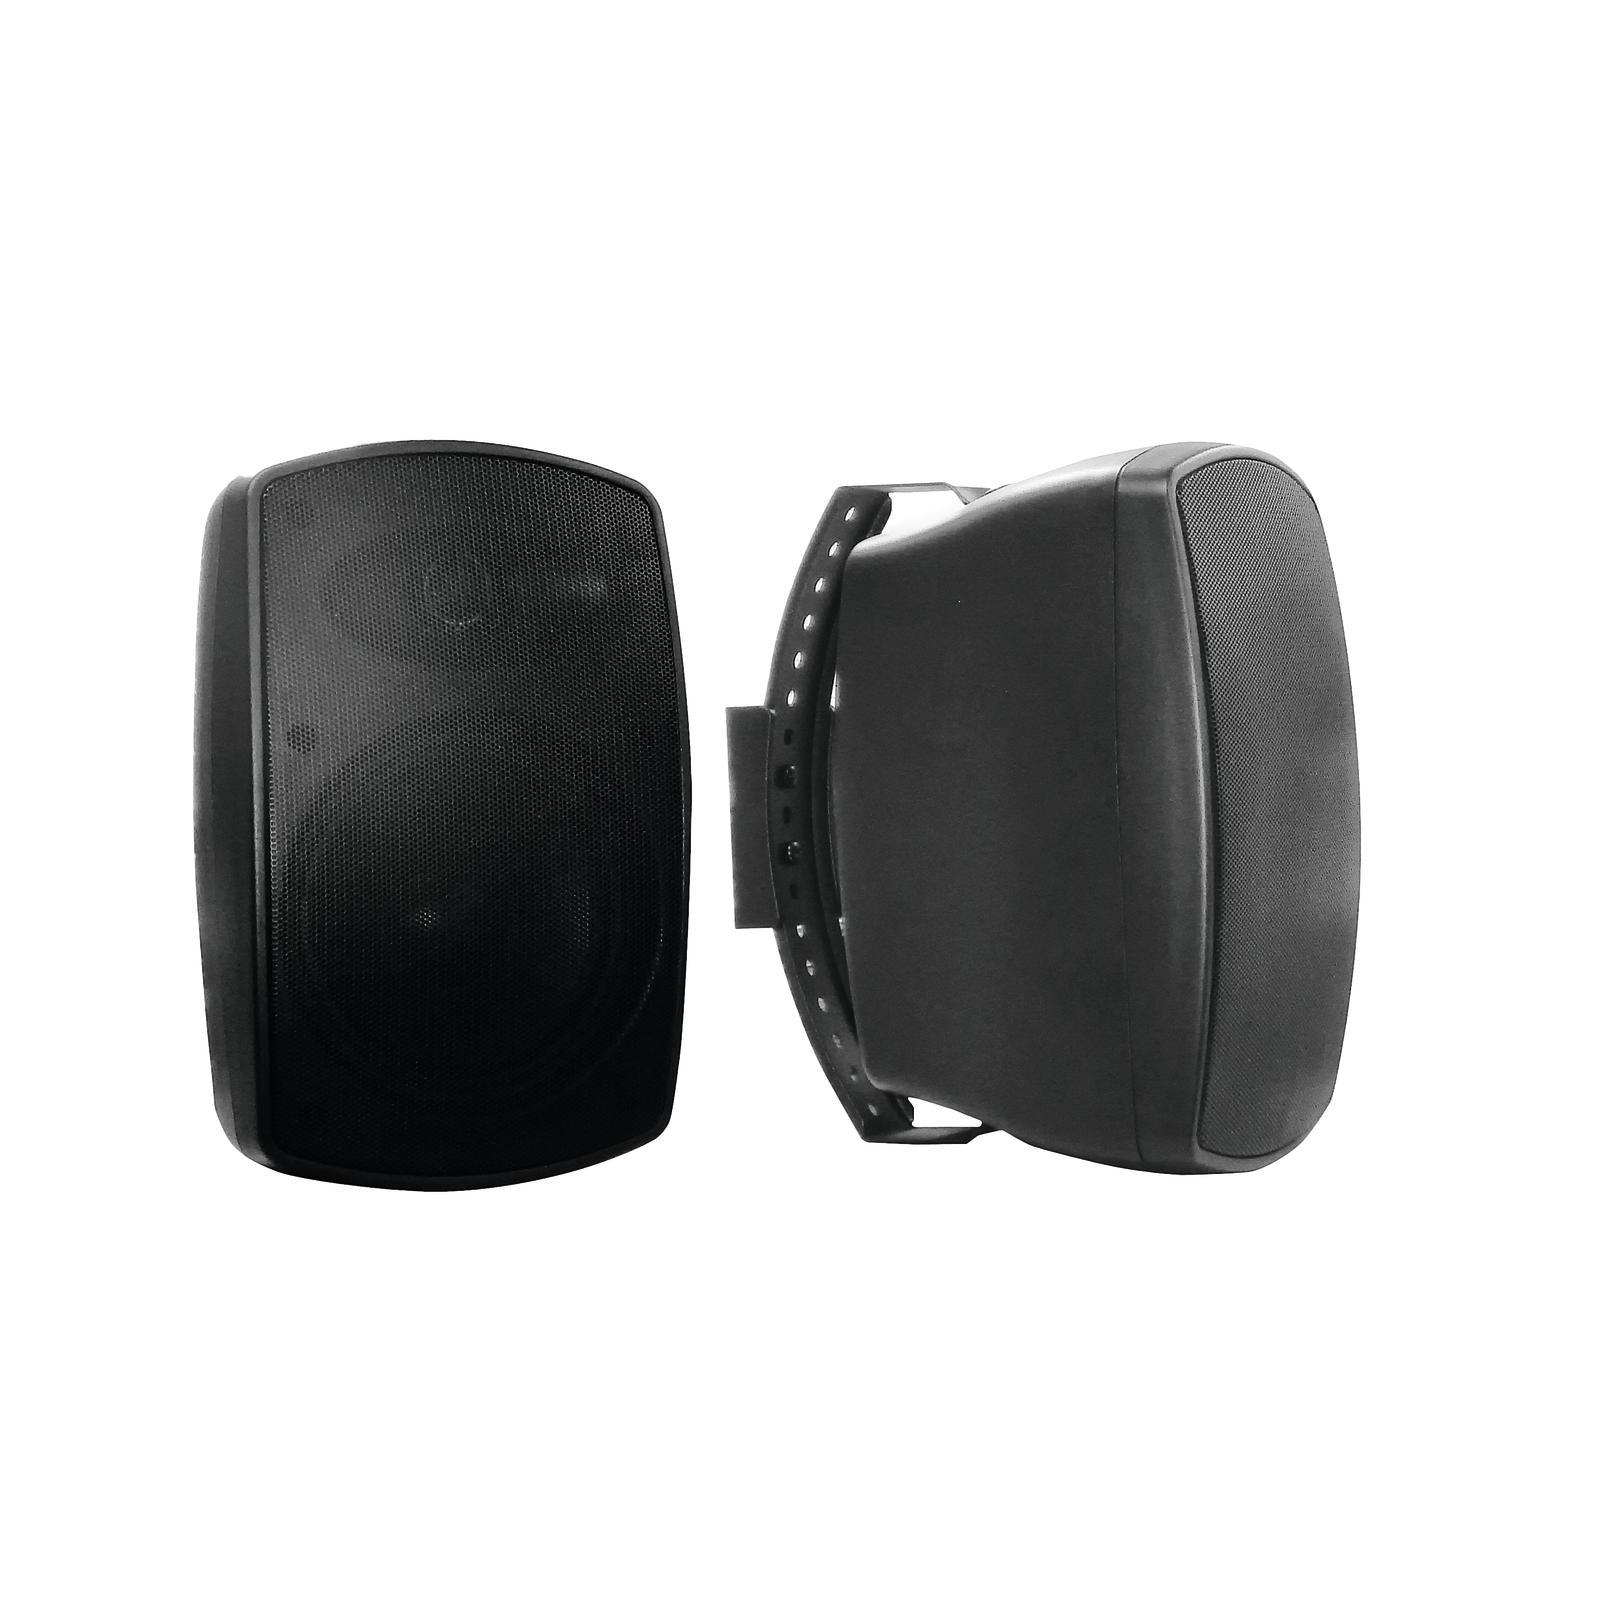 OMNITRONIC OD-4 Wall Speaker 8Ohms black 2x